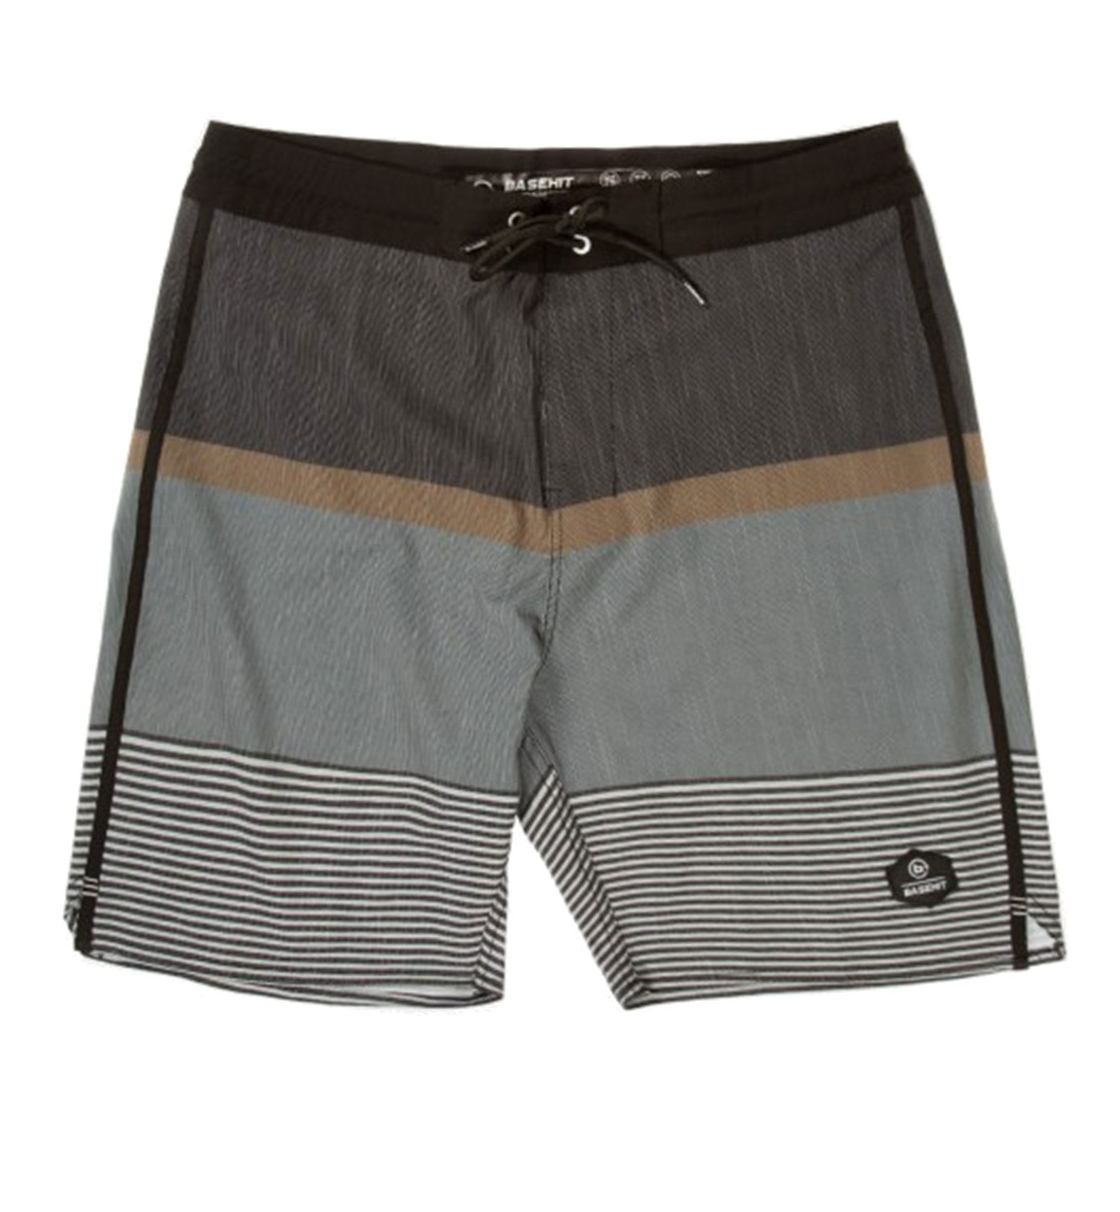 Basehit Ss19 Men'S Board Shorts